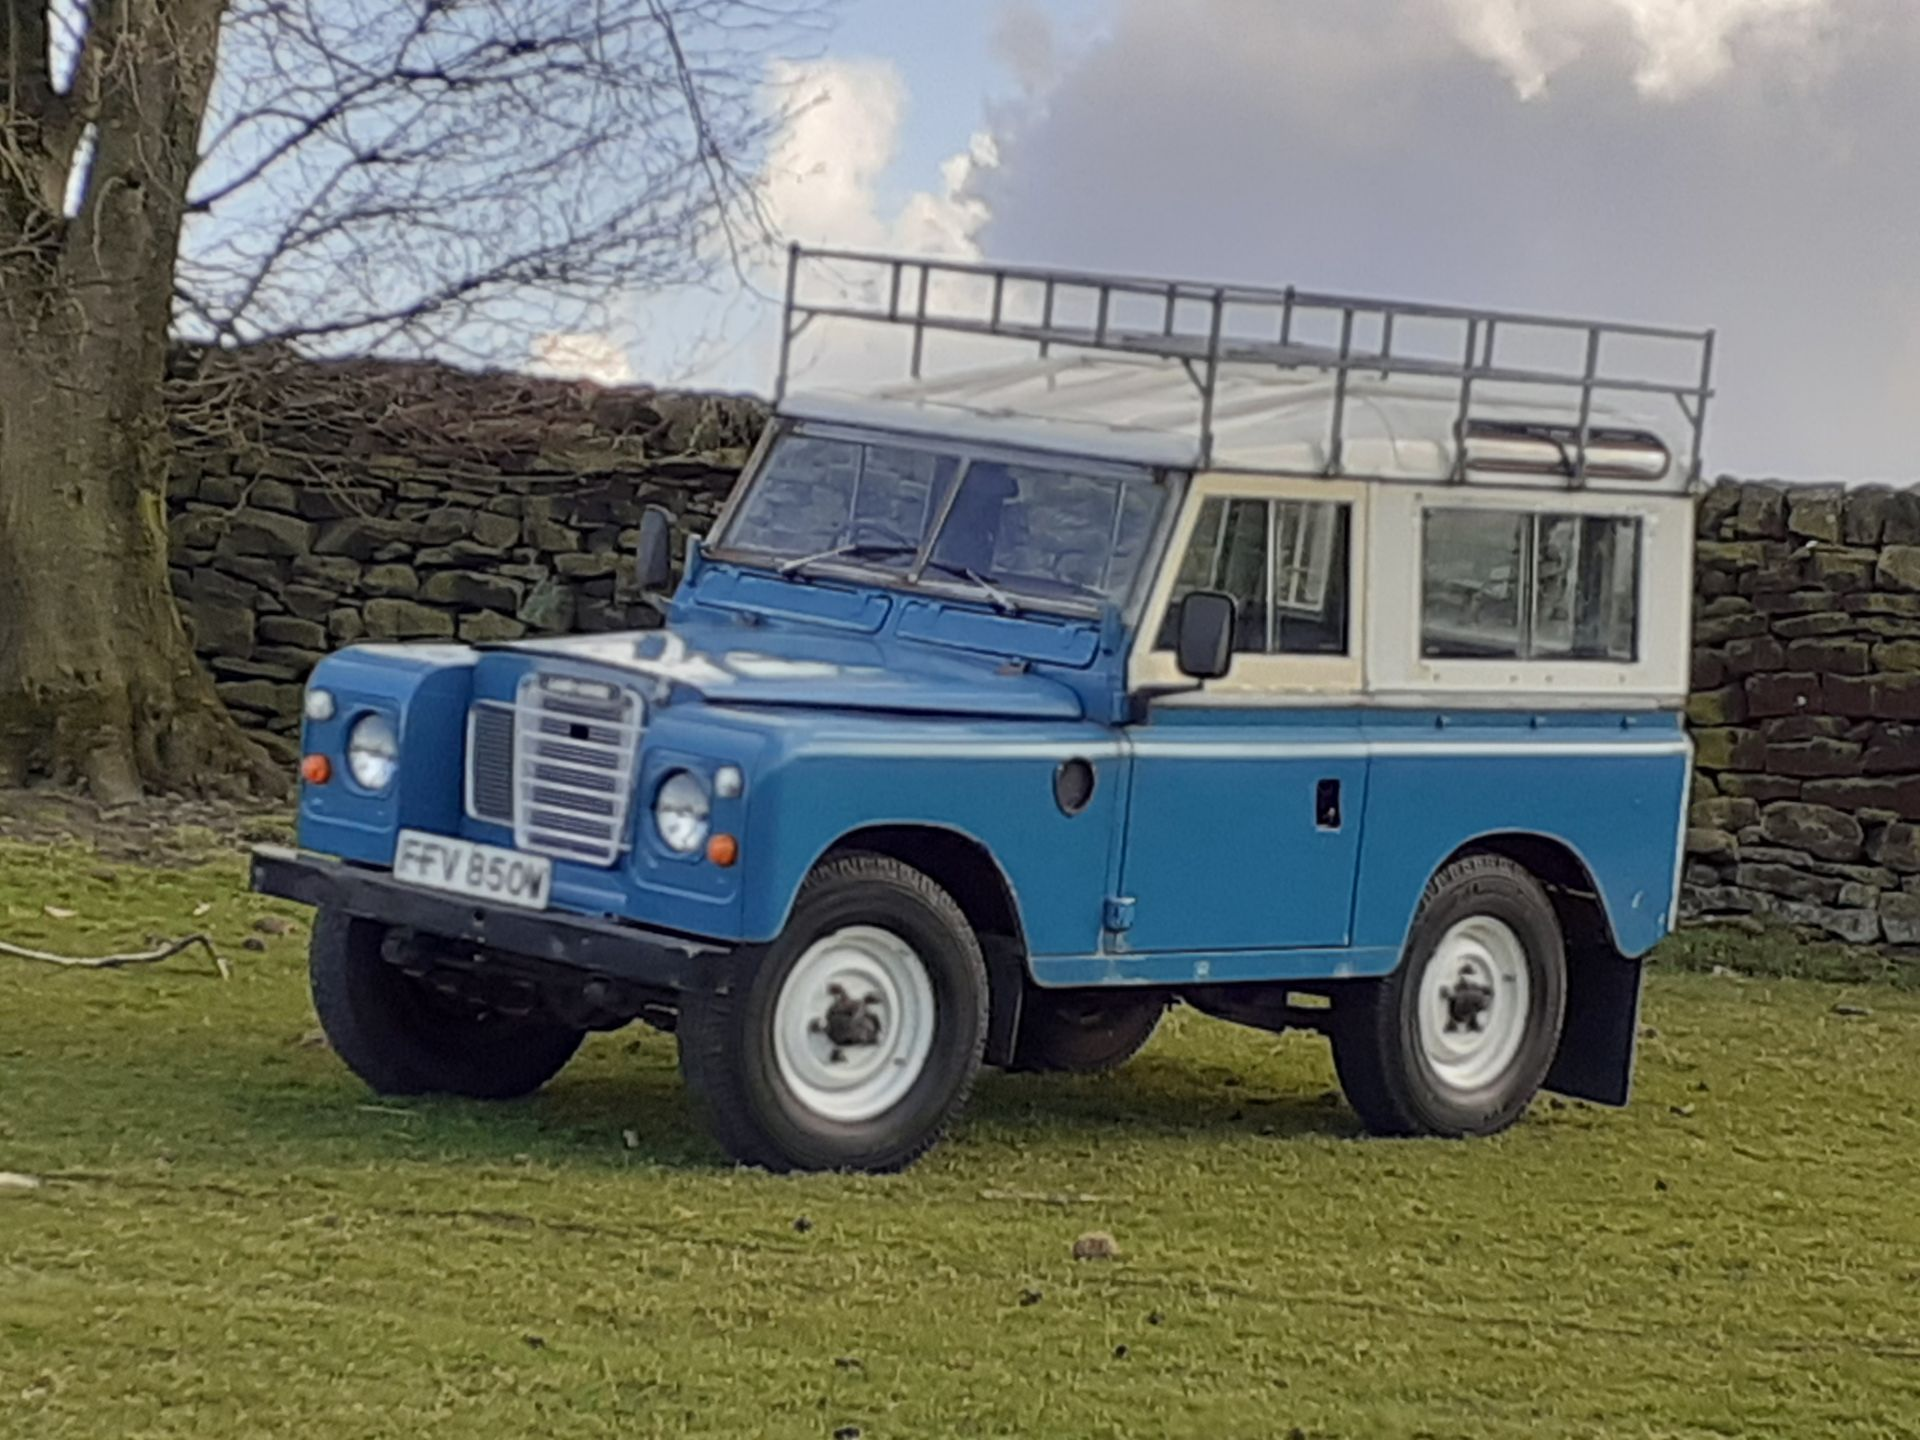 1980 LAND ROVER SERIES III CLASSIC STATION WAGON, TAX AND MOT EXEMPT *NO VAT* - Image 5 of 22